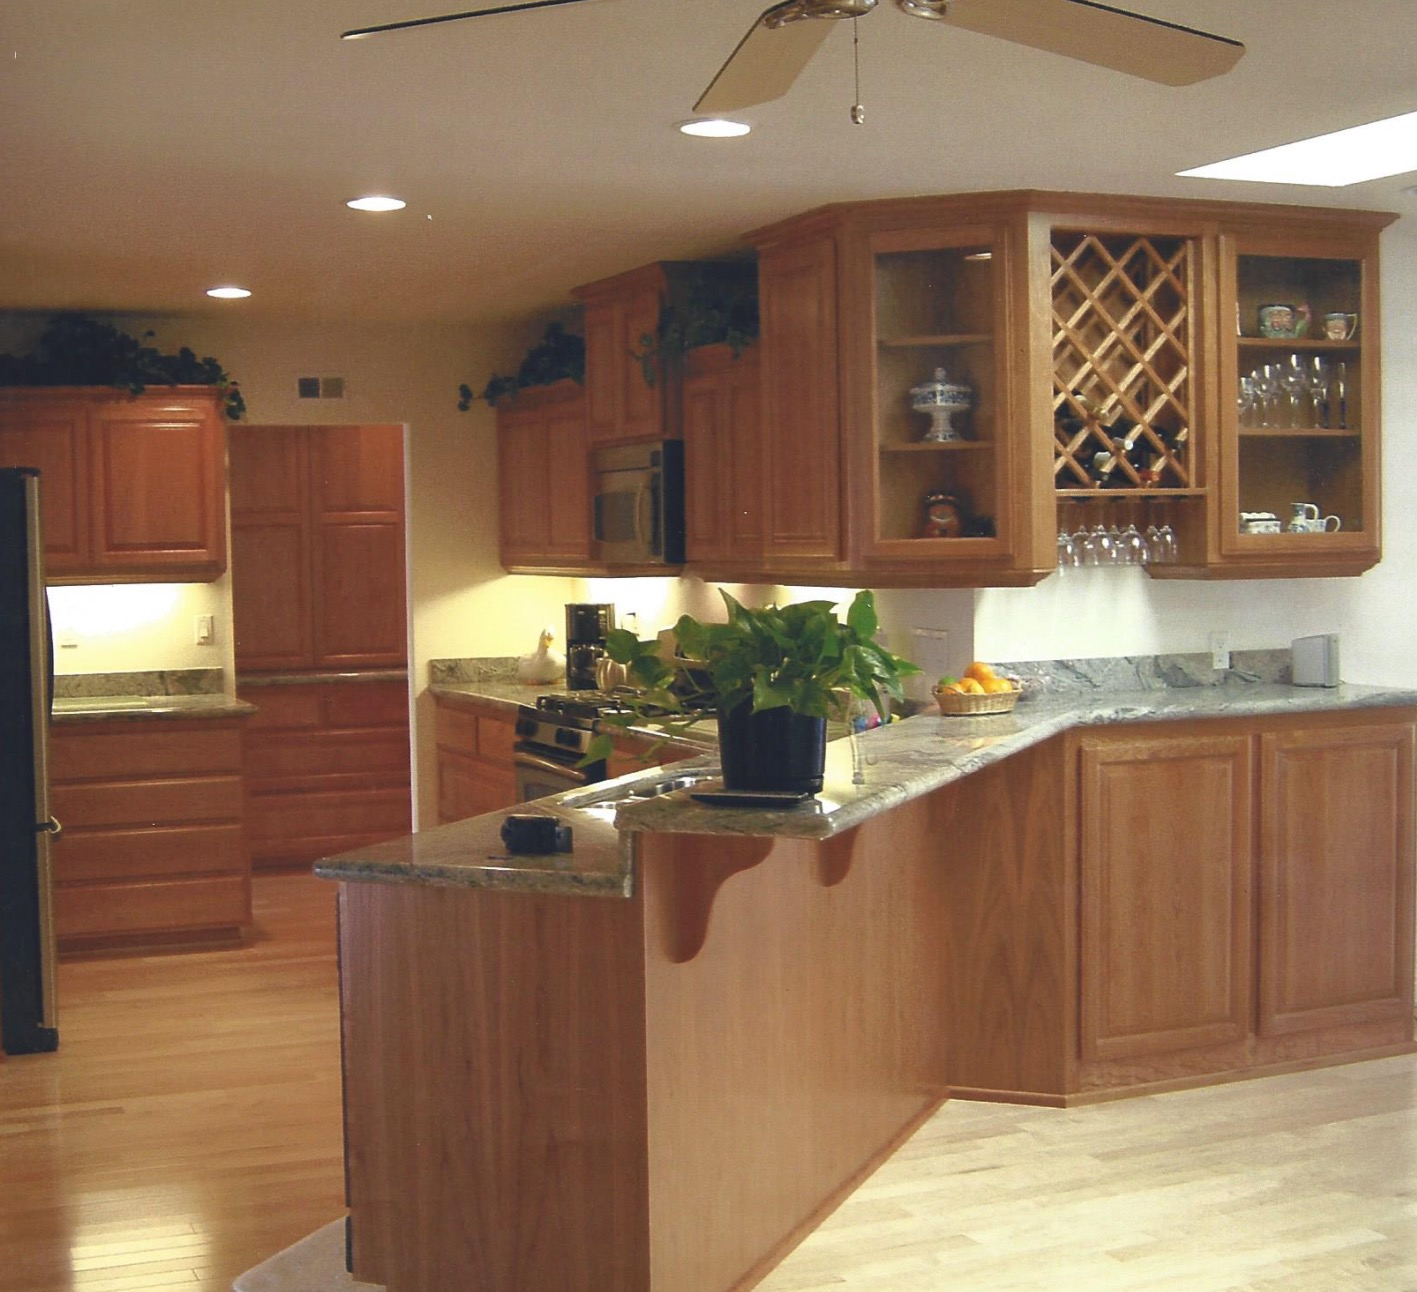 New Cabinets and Clean Remodel